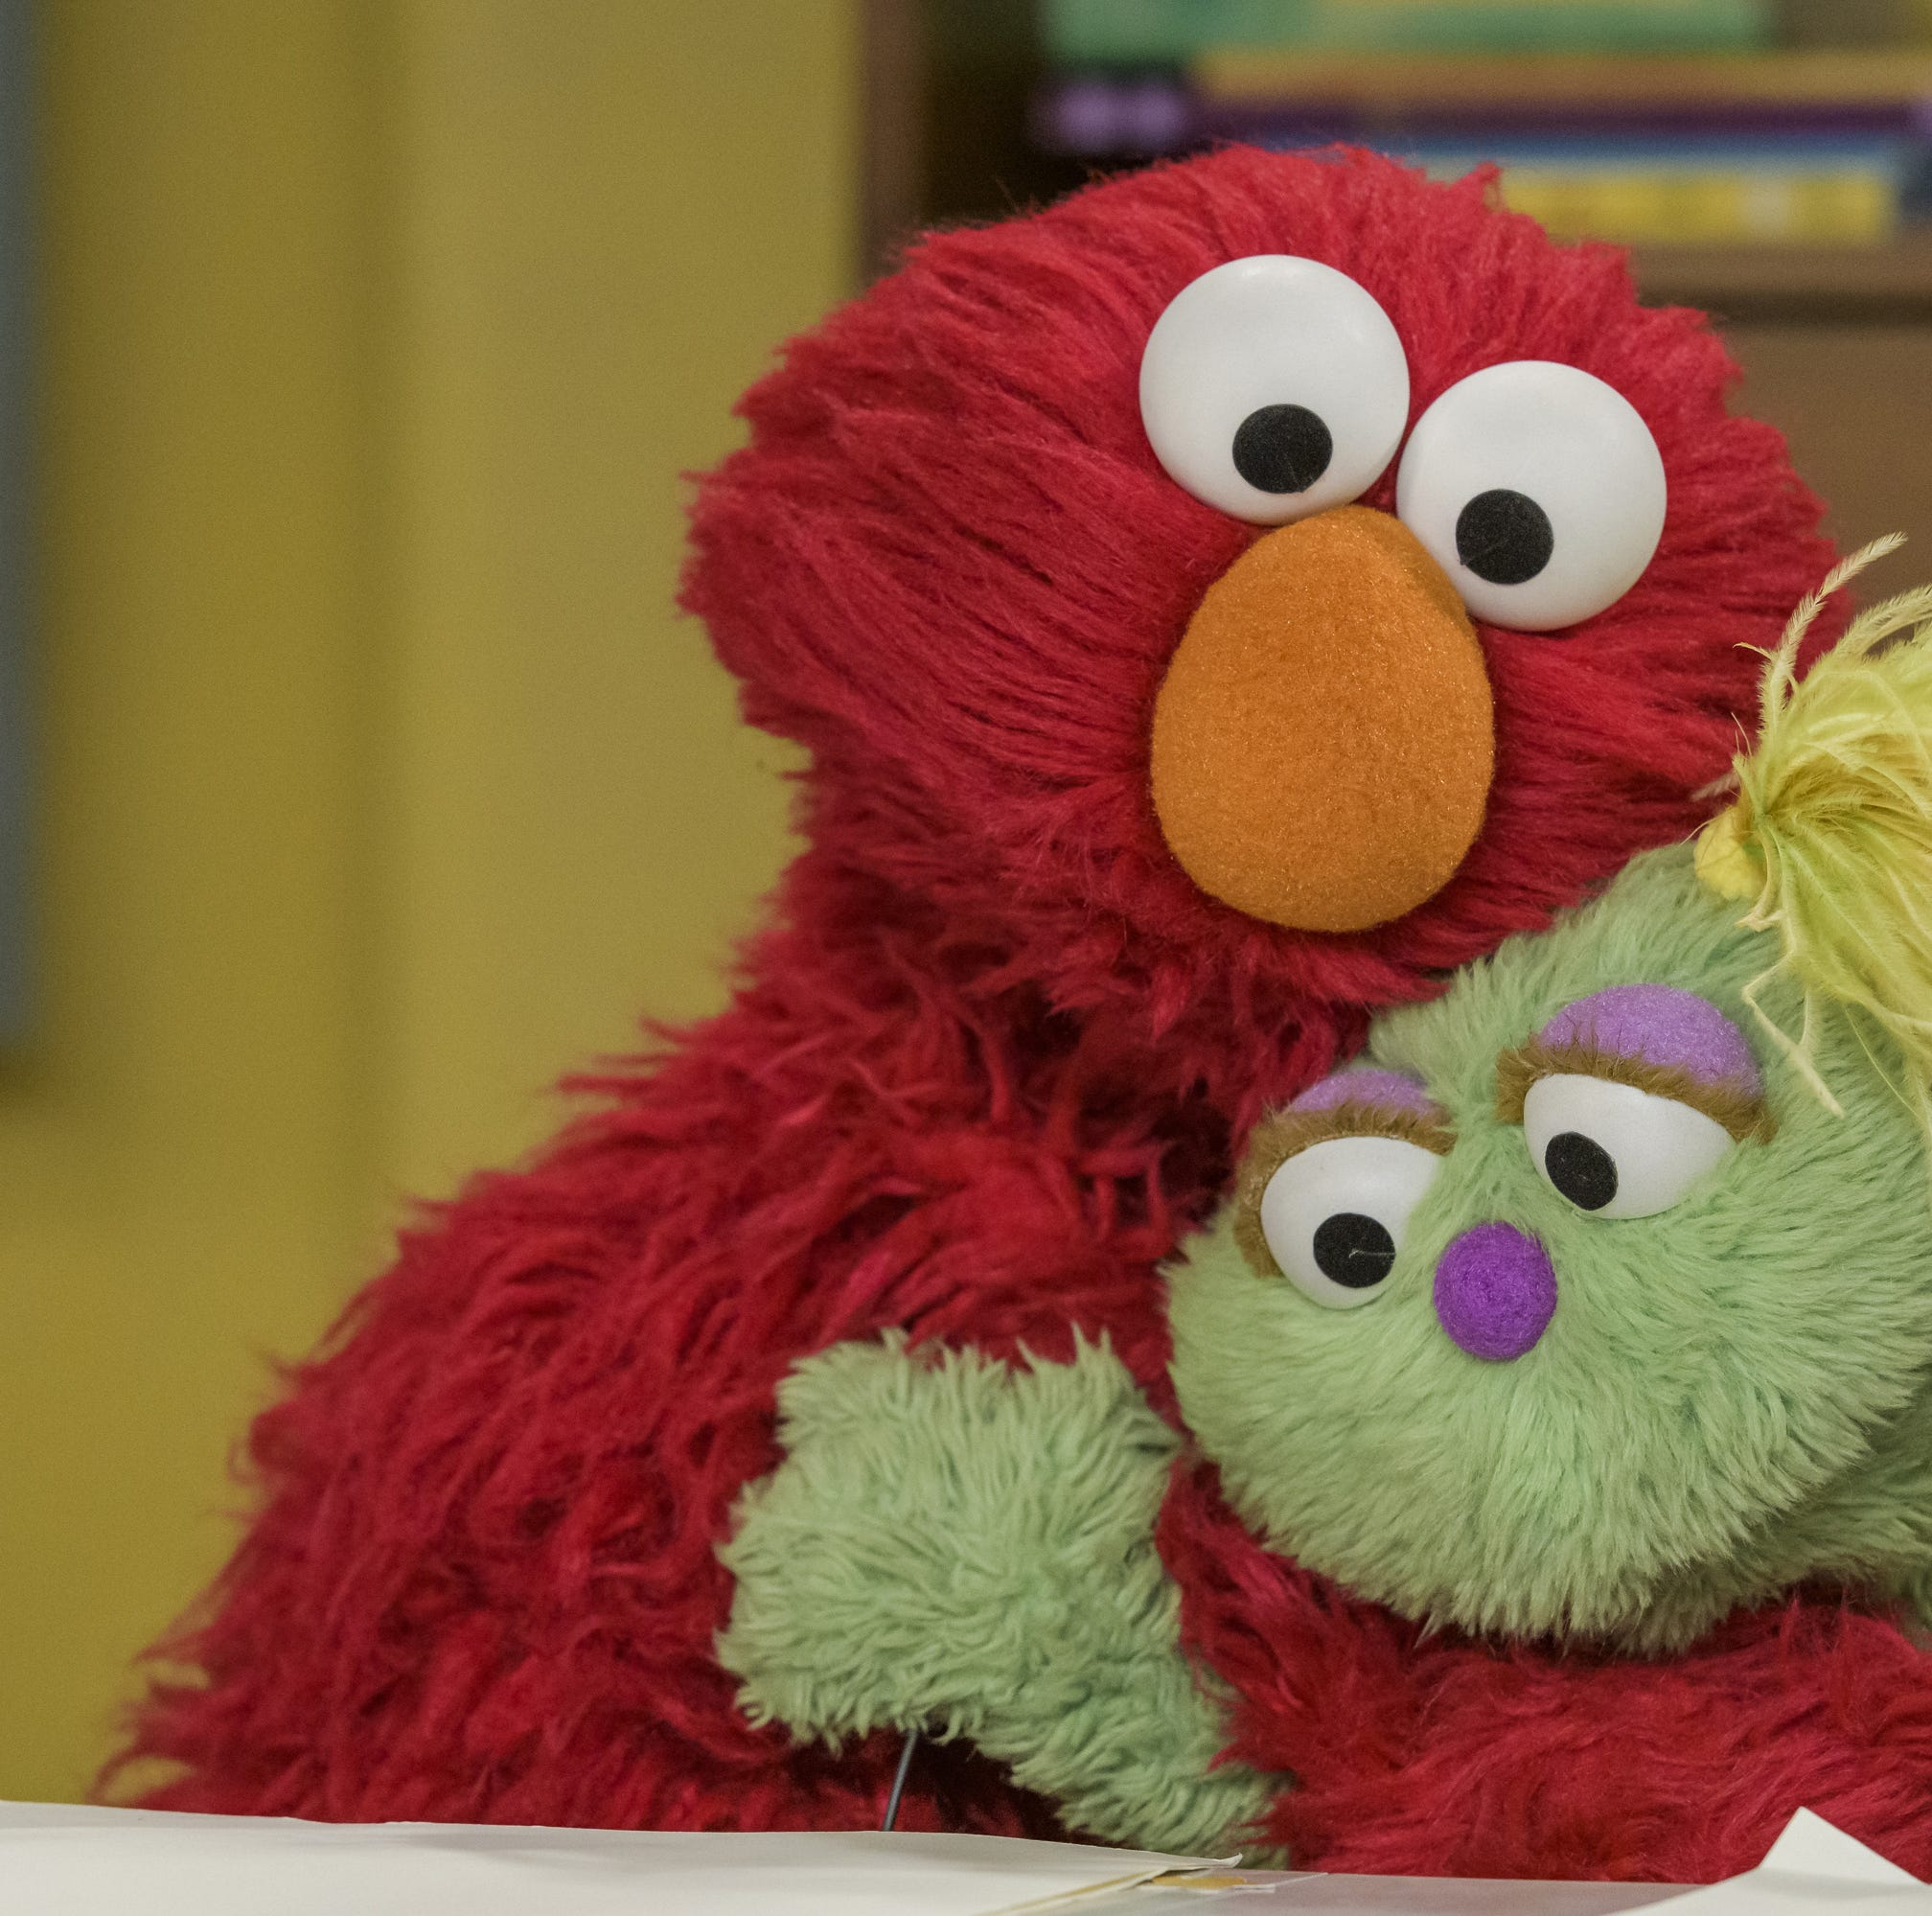 Elmo and Karli on 'Sesame Street'